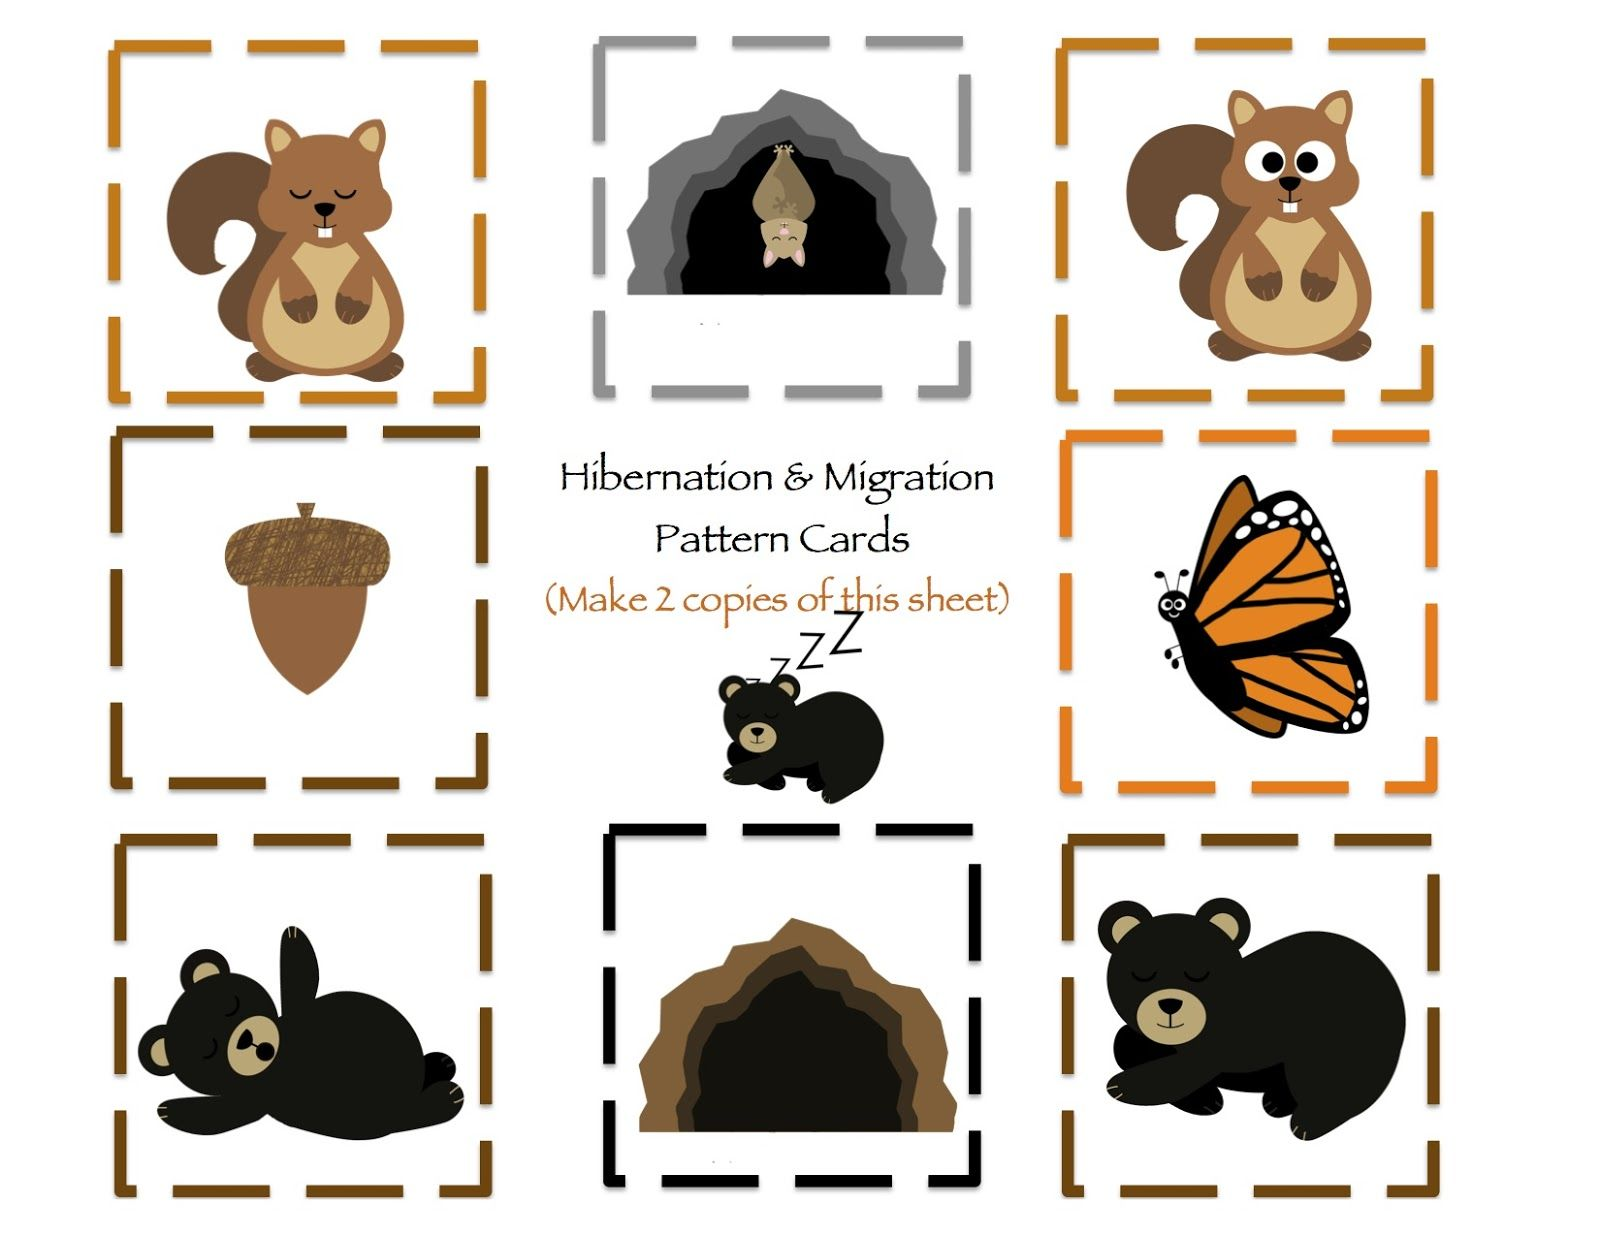 hibernation migration printable preschool preschool printables preschool activities. Black Bedroom Furniture Sets. Home Design Ideas